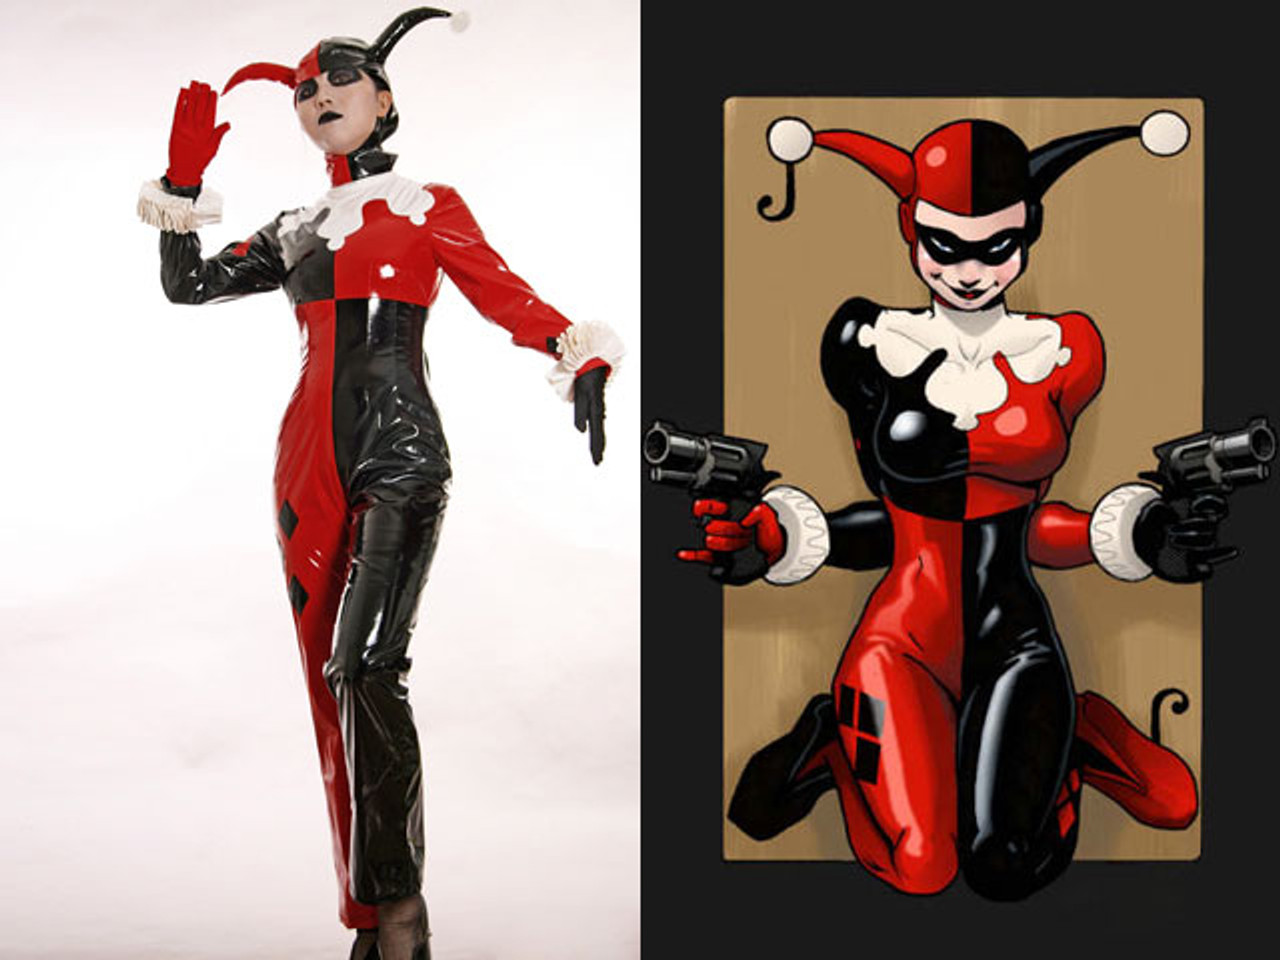 Batman Cosplay Harley Quinn Jester Pvc Costume Set Gotham Girls Dc Comics